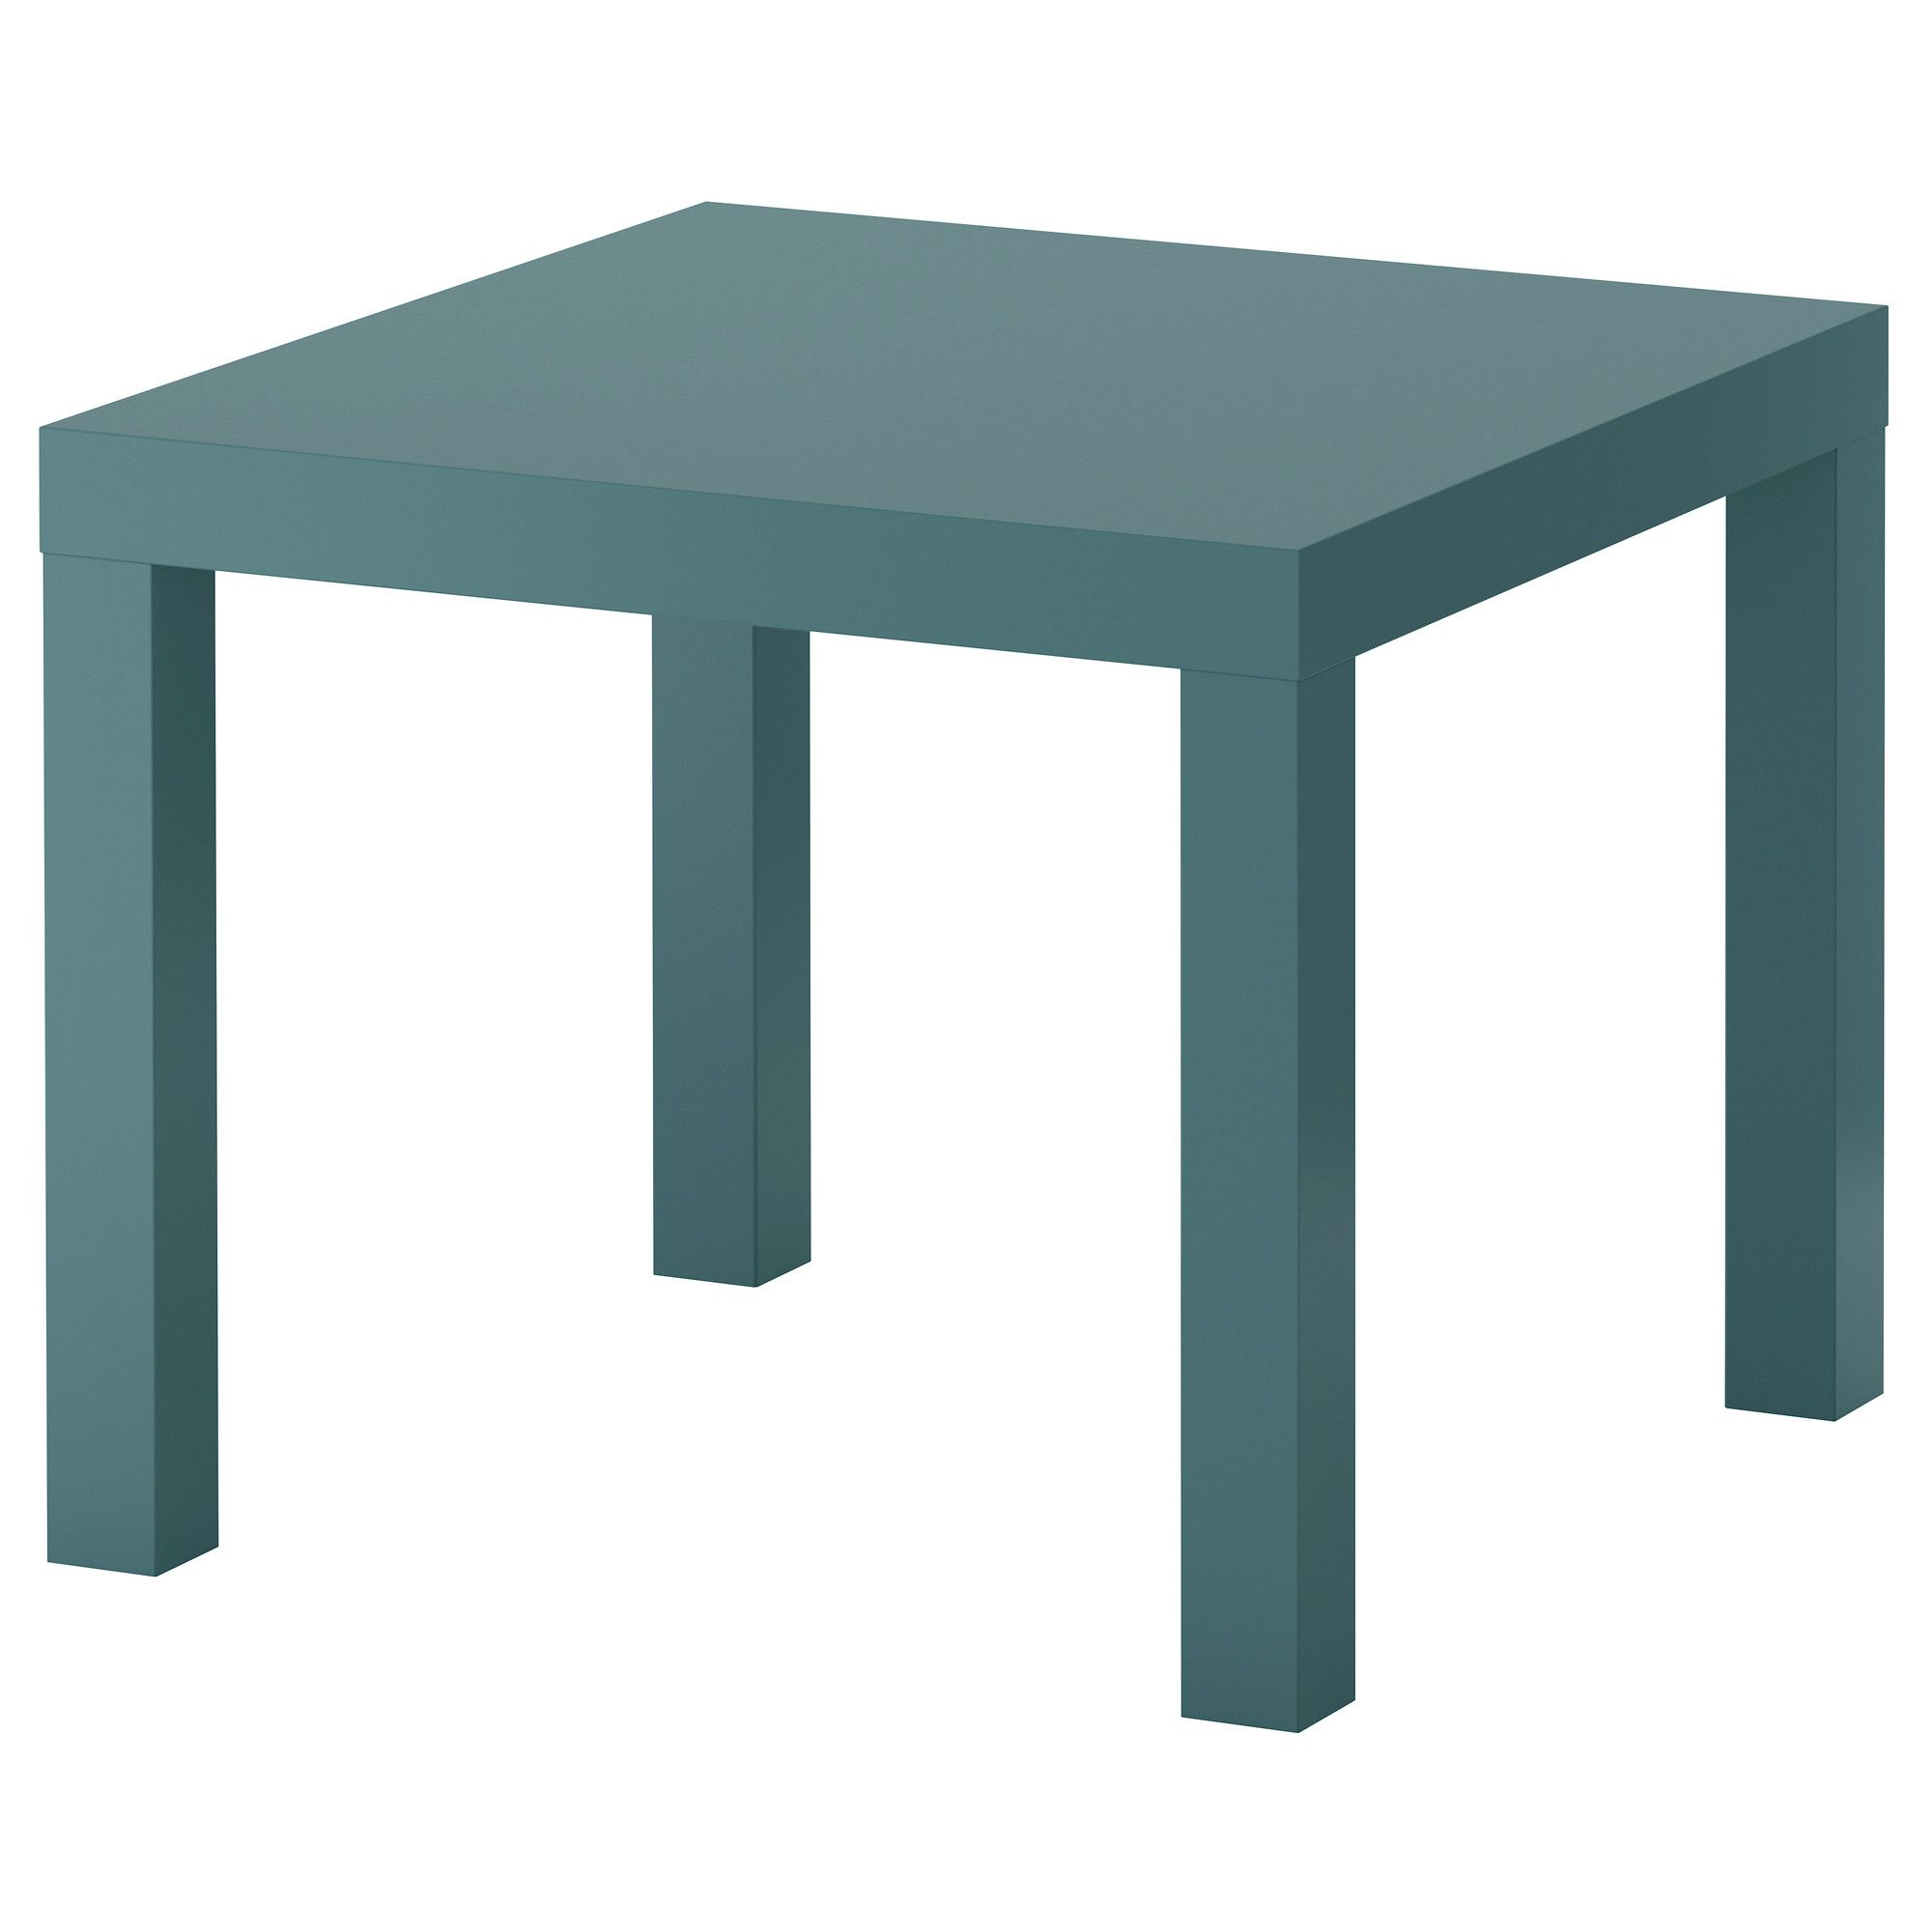 LACK Side table - gray-turquoise, 21 5/8x21 5/8 \